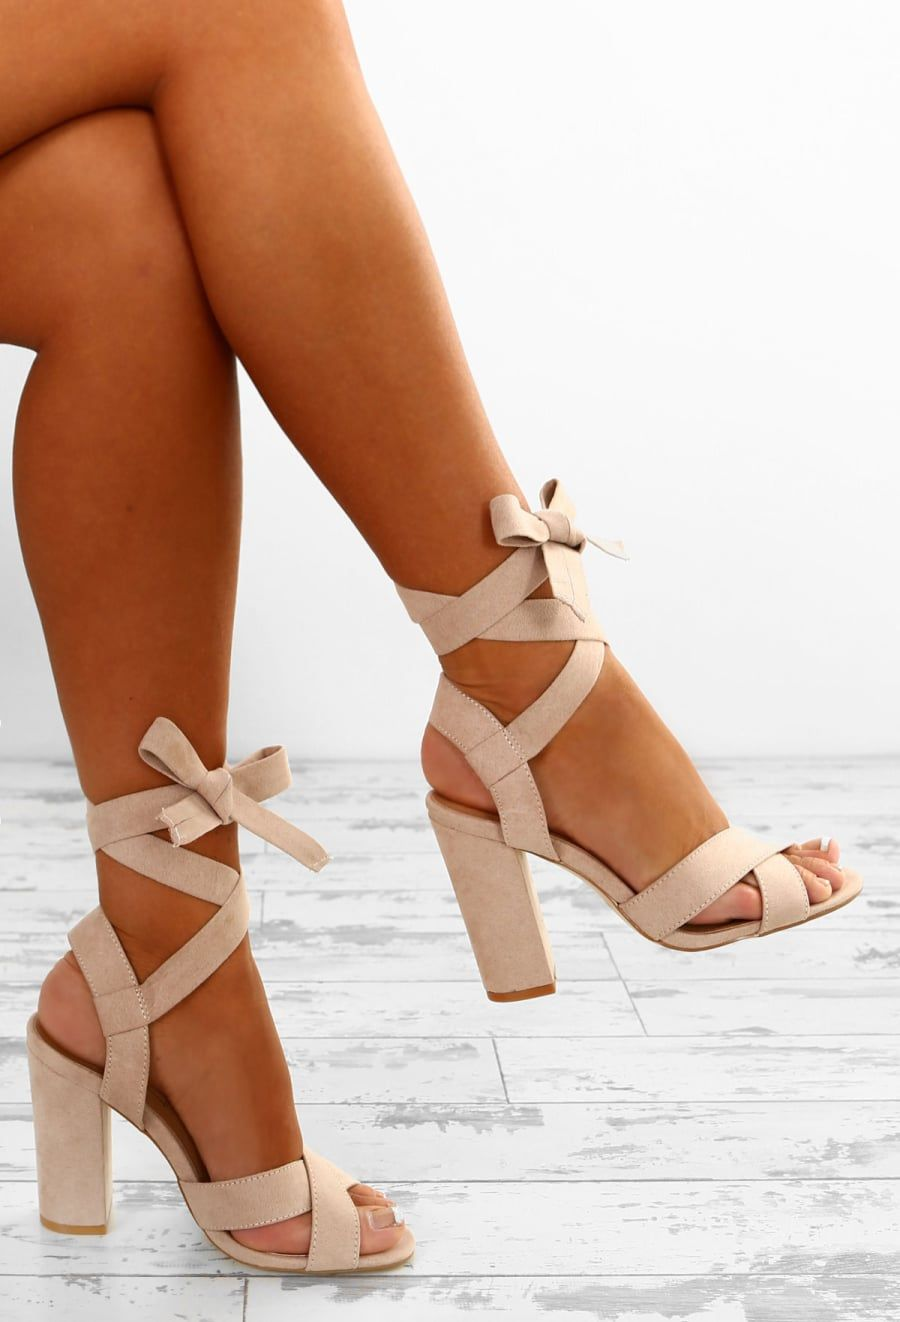 0943405fa09 Summer Chic Nude Faux Suede Ankle Wrap Block Heels - UK 3